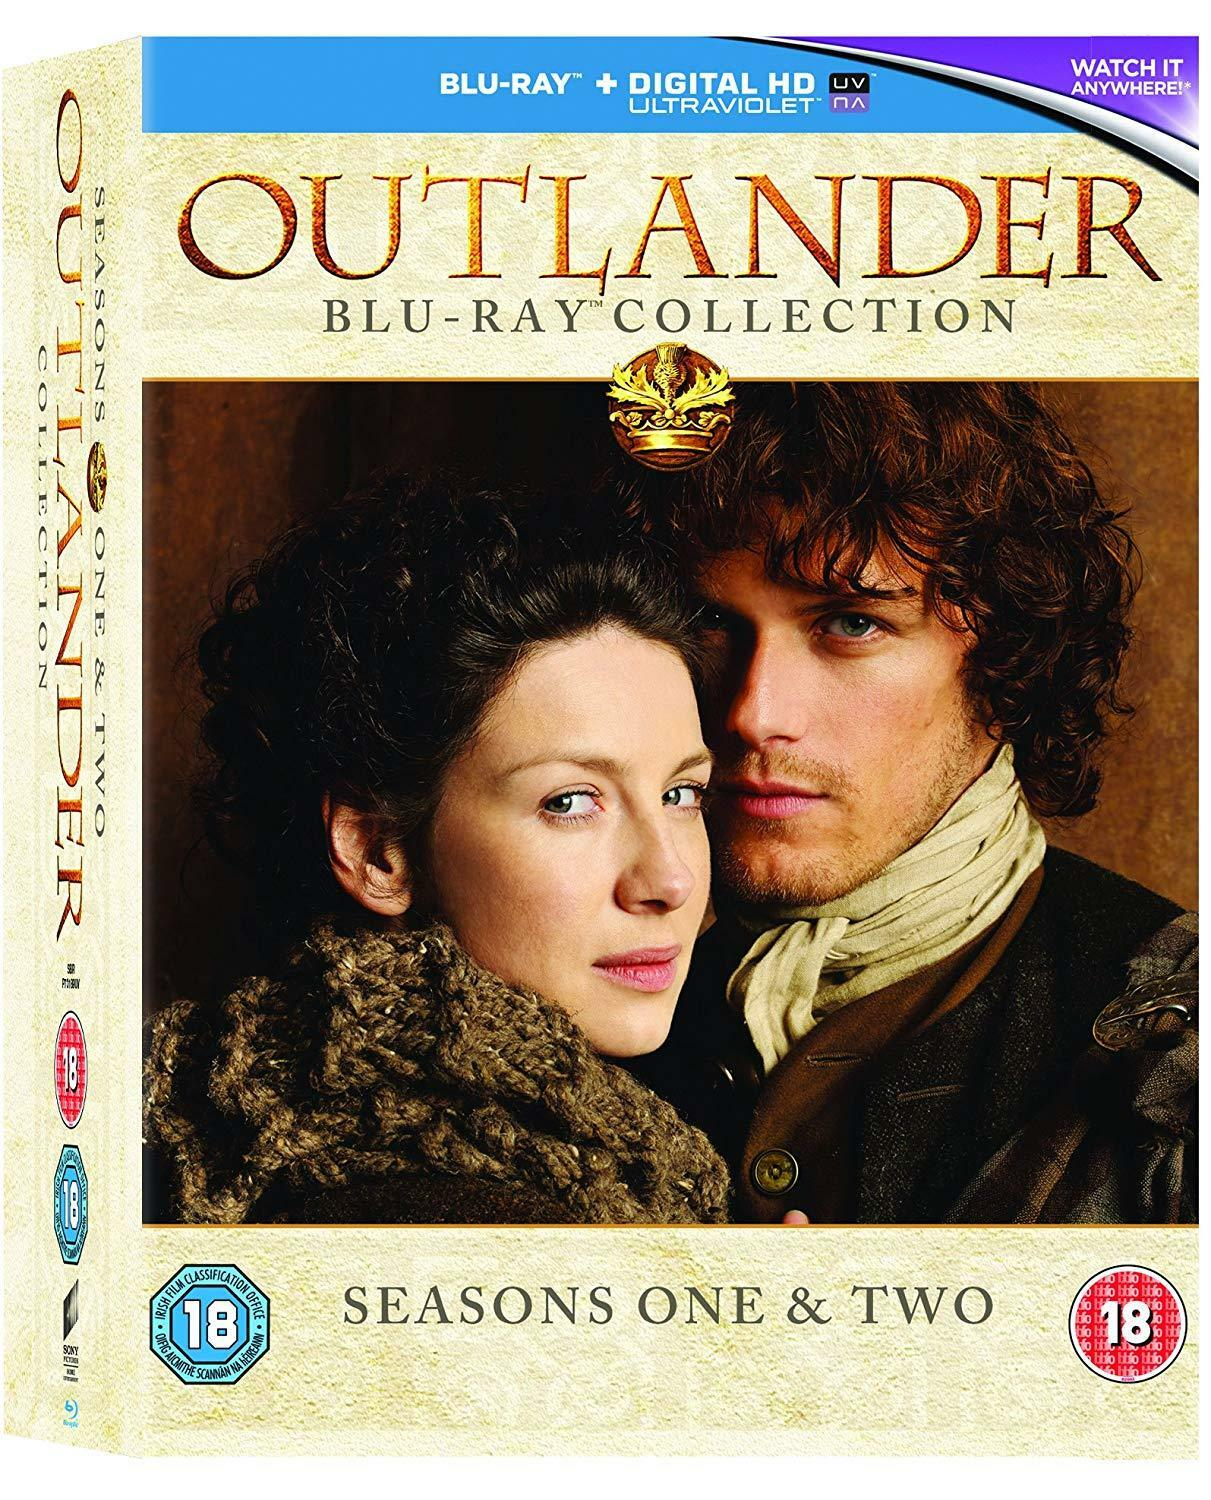 Details about Outlander Season 1 + 2 Collection [Blu-ray Box Set Region  Free TV Series] NEW